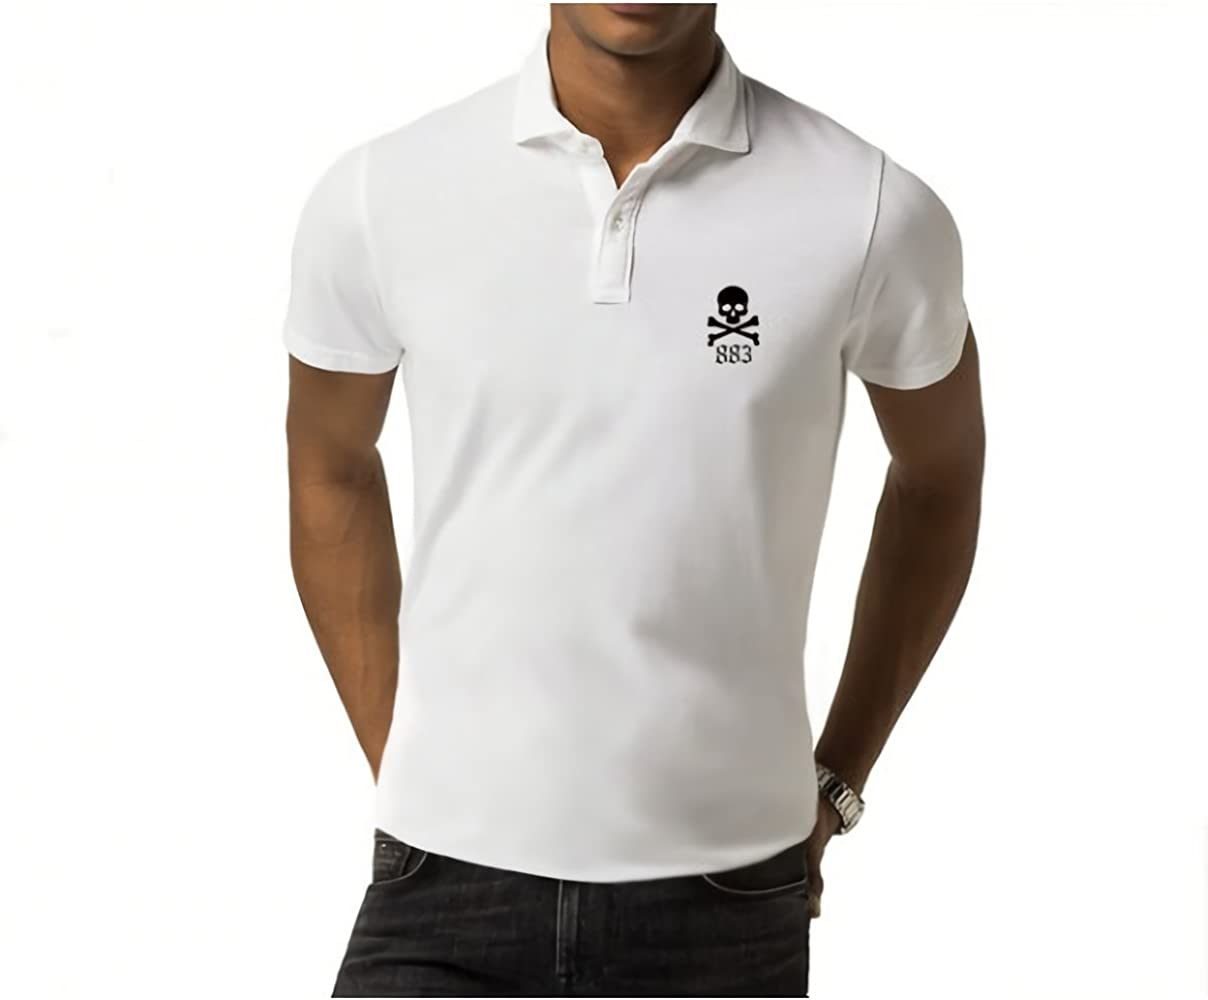 POLO 883 POLICE MC SKULL: Amazon.es: Ropa y accesorios